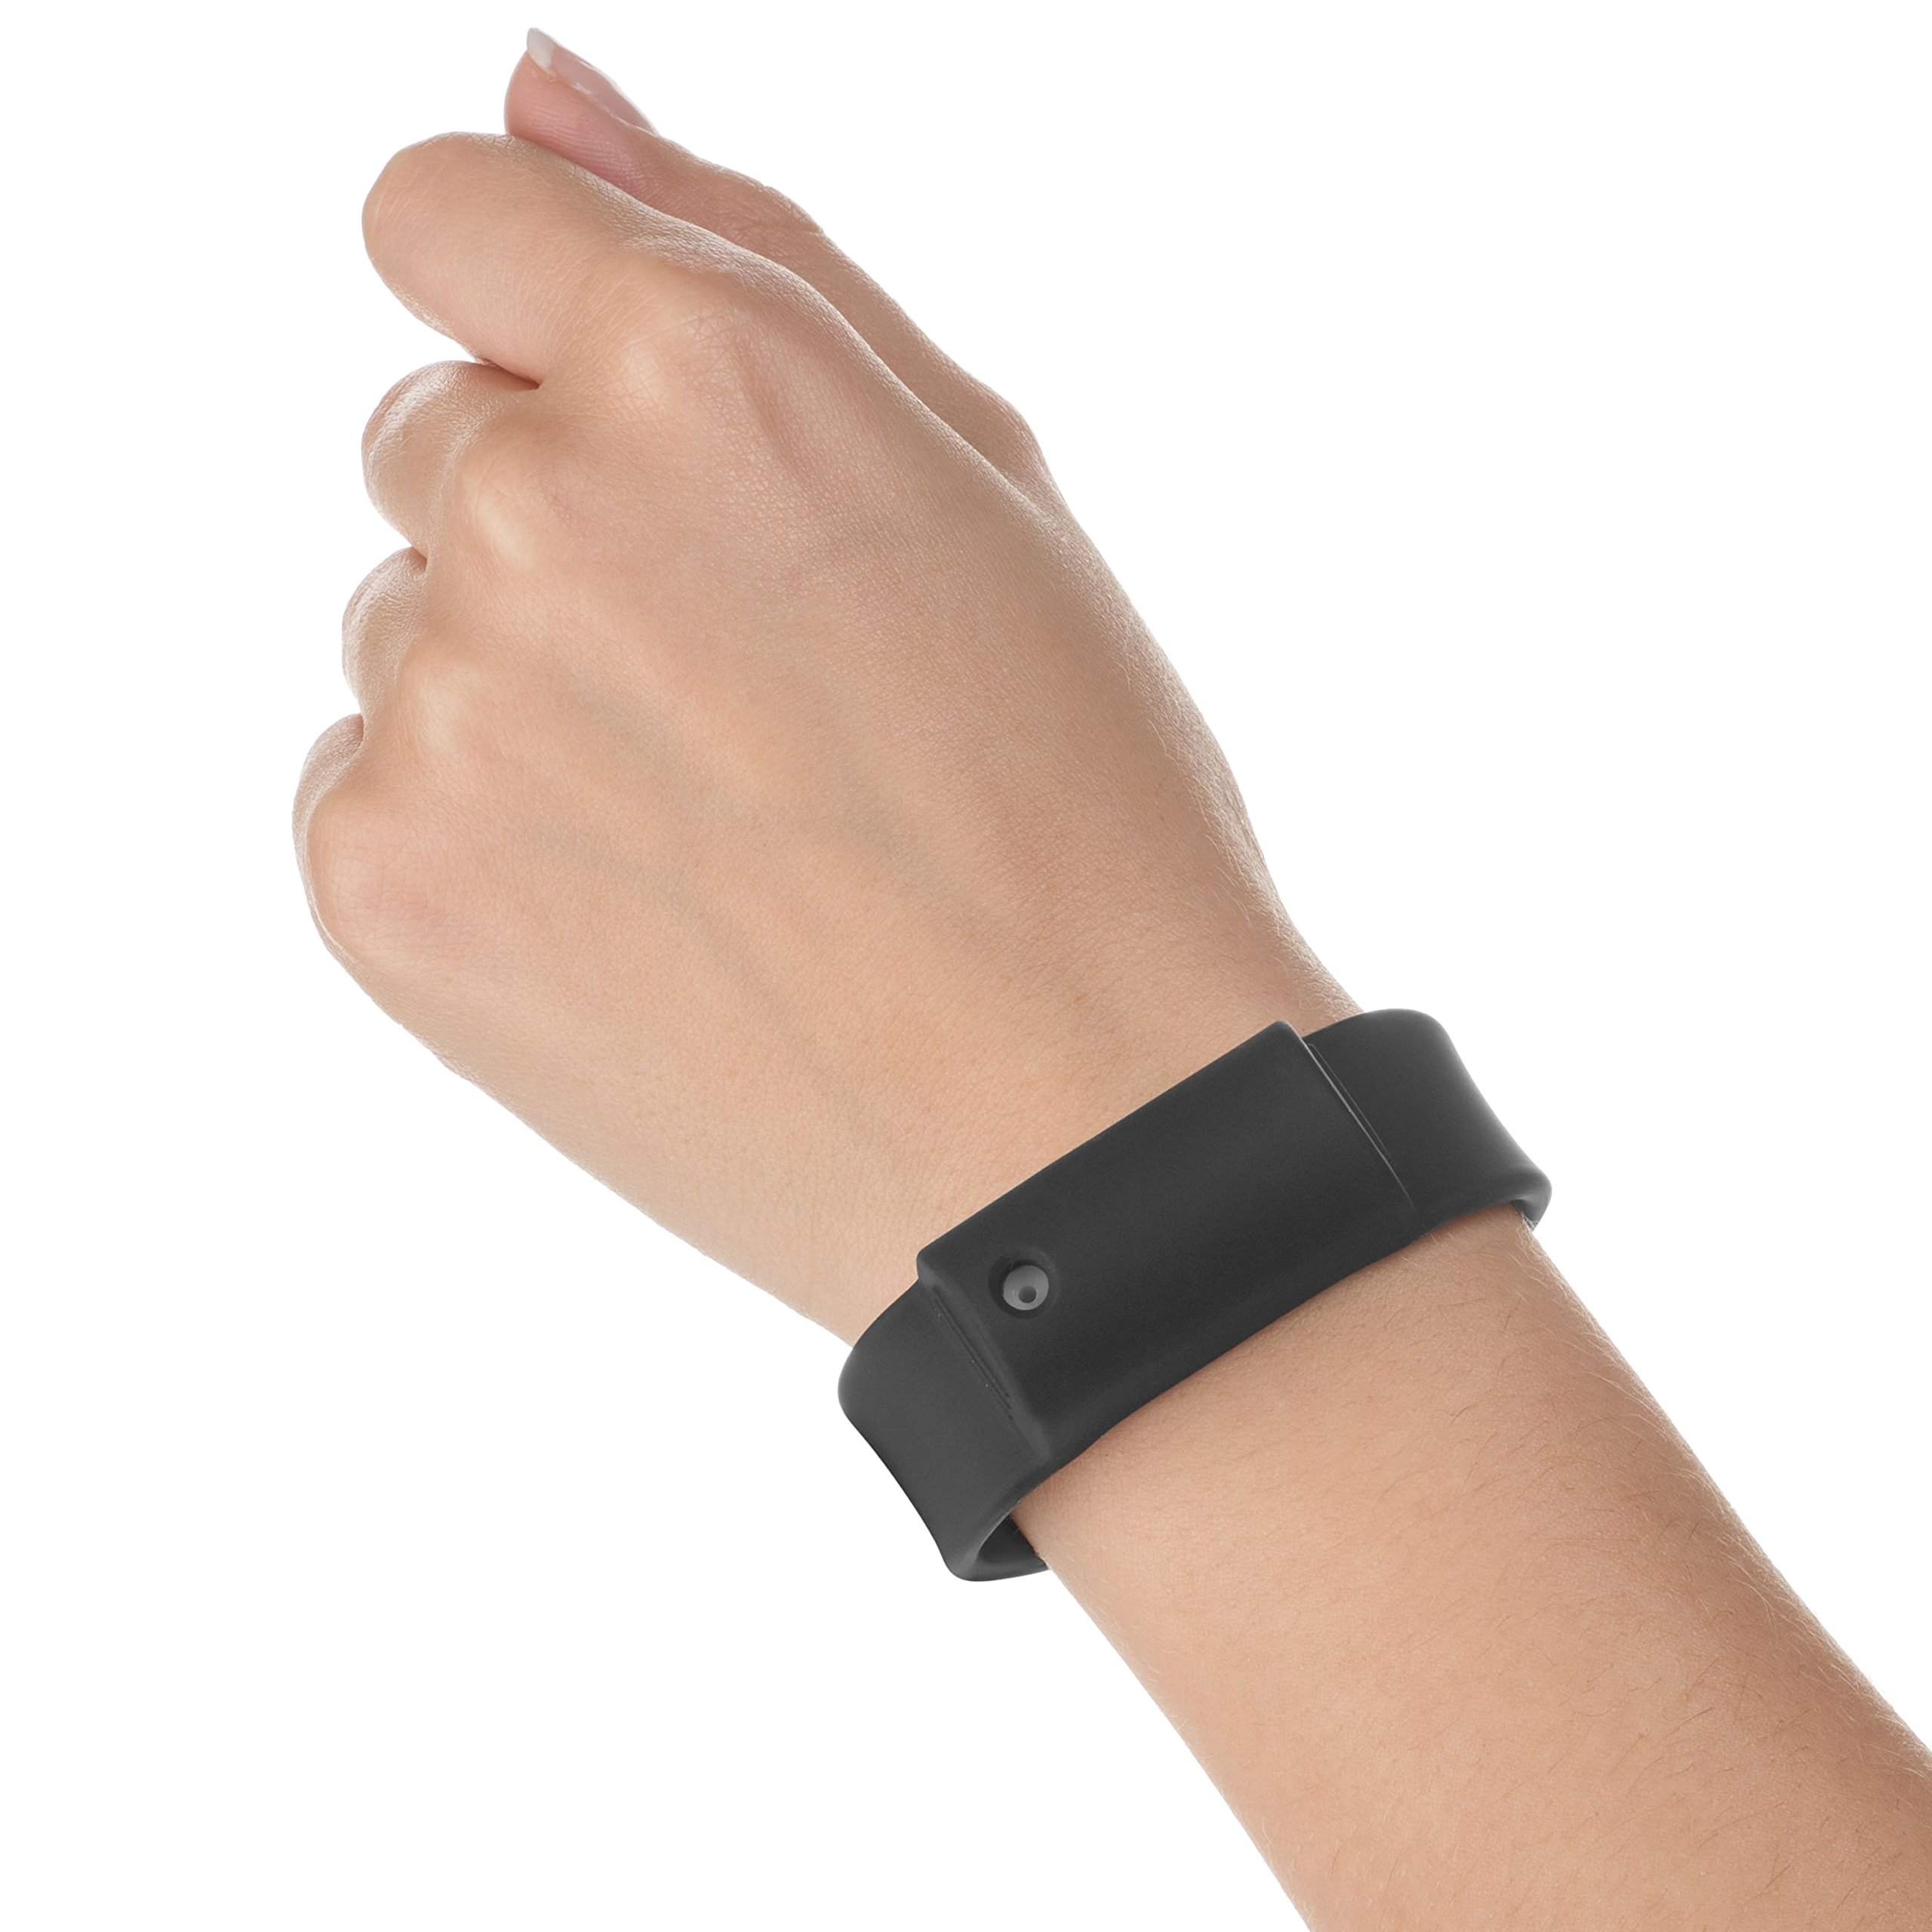 Little Viper Pepper Spray Bracelet, Adjustable Silicone Band- Black, Lightweight, Discreet and Easy Access For Quick Response to Attack, Contains 3-6 Bursts of 10% OC, Cannot Ship to MA or NY